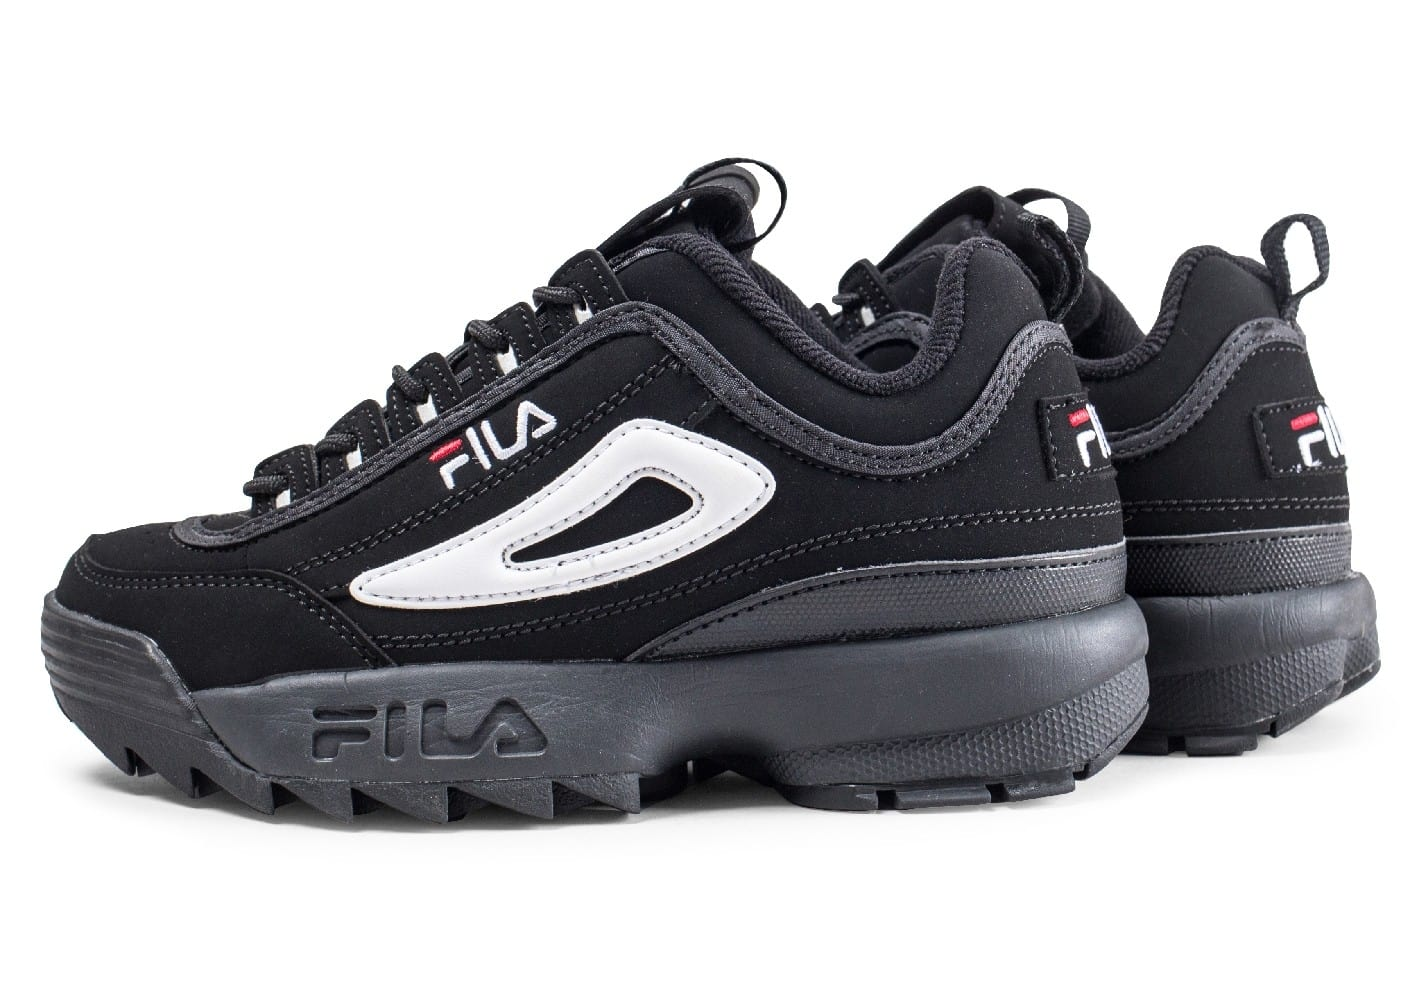 fila disruptor ii junior noire et blanche chaussures femme chausport. Black Bedroom Furniture Sets. Home Design Ideas